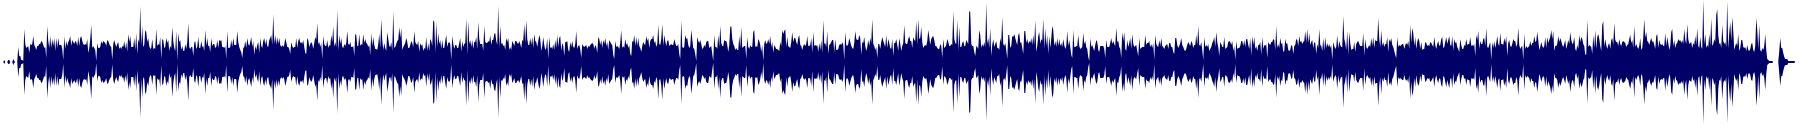 waveform of track #73680